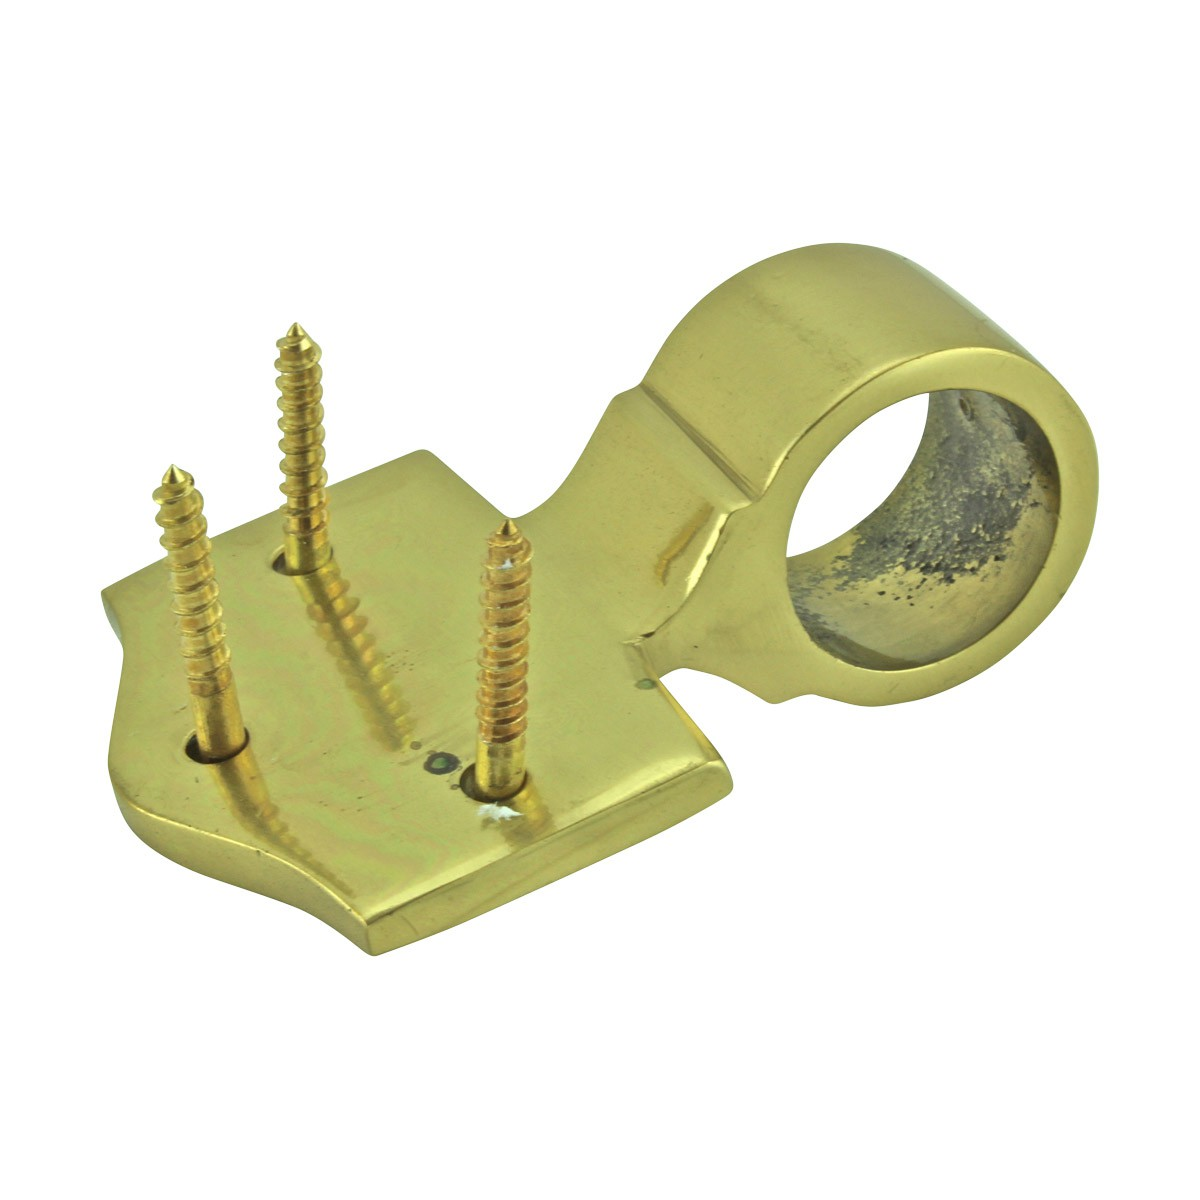 6 Sash Lift Solid Brass Offset Eye Window Pulls Window Lifts Sash Lift